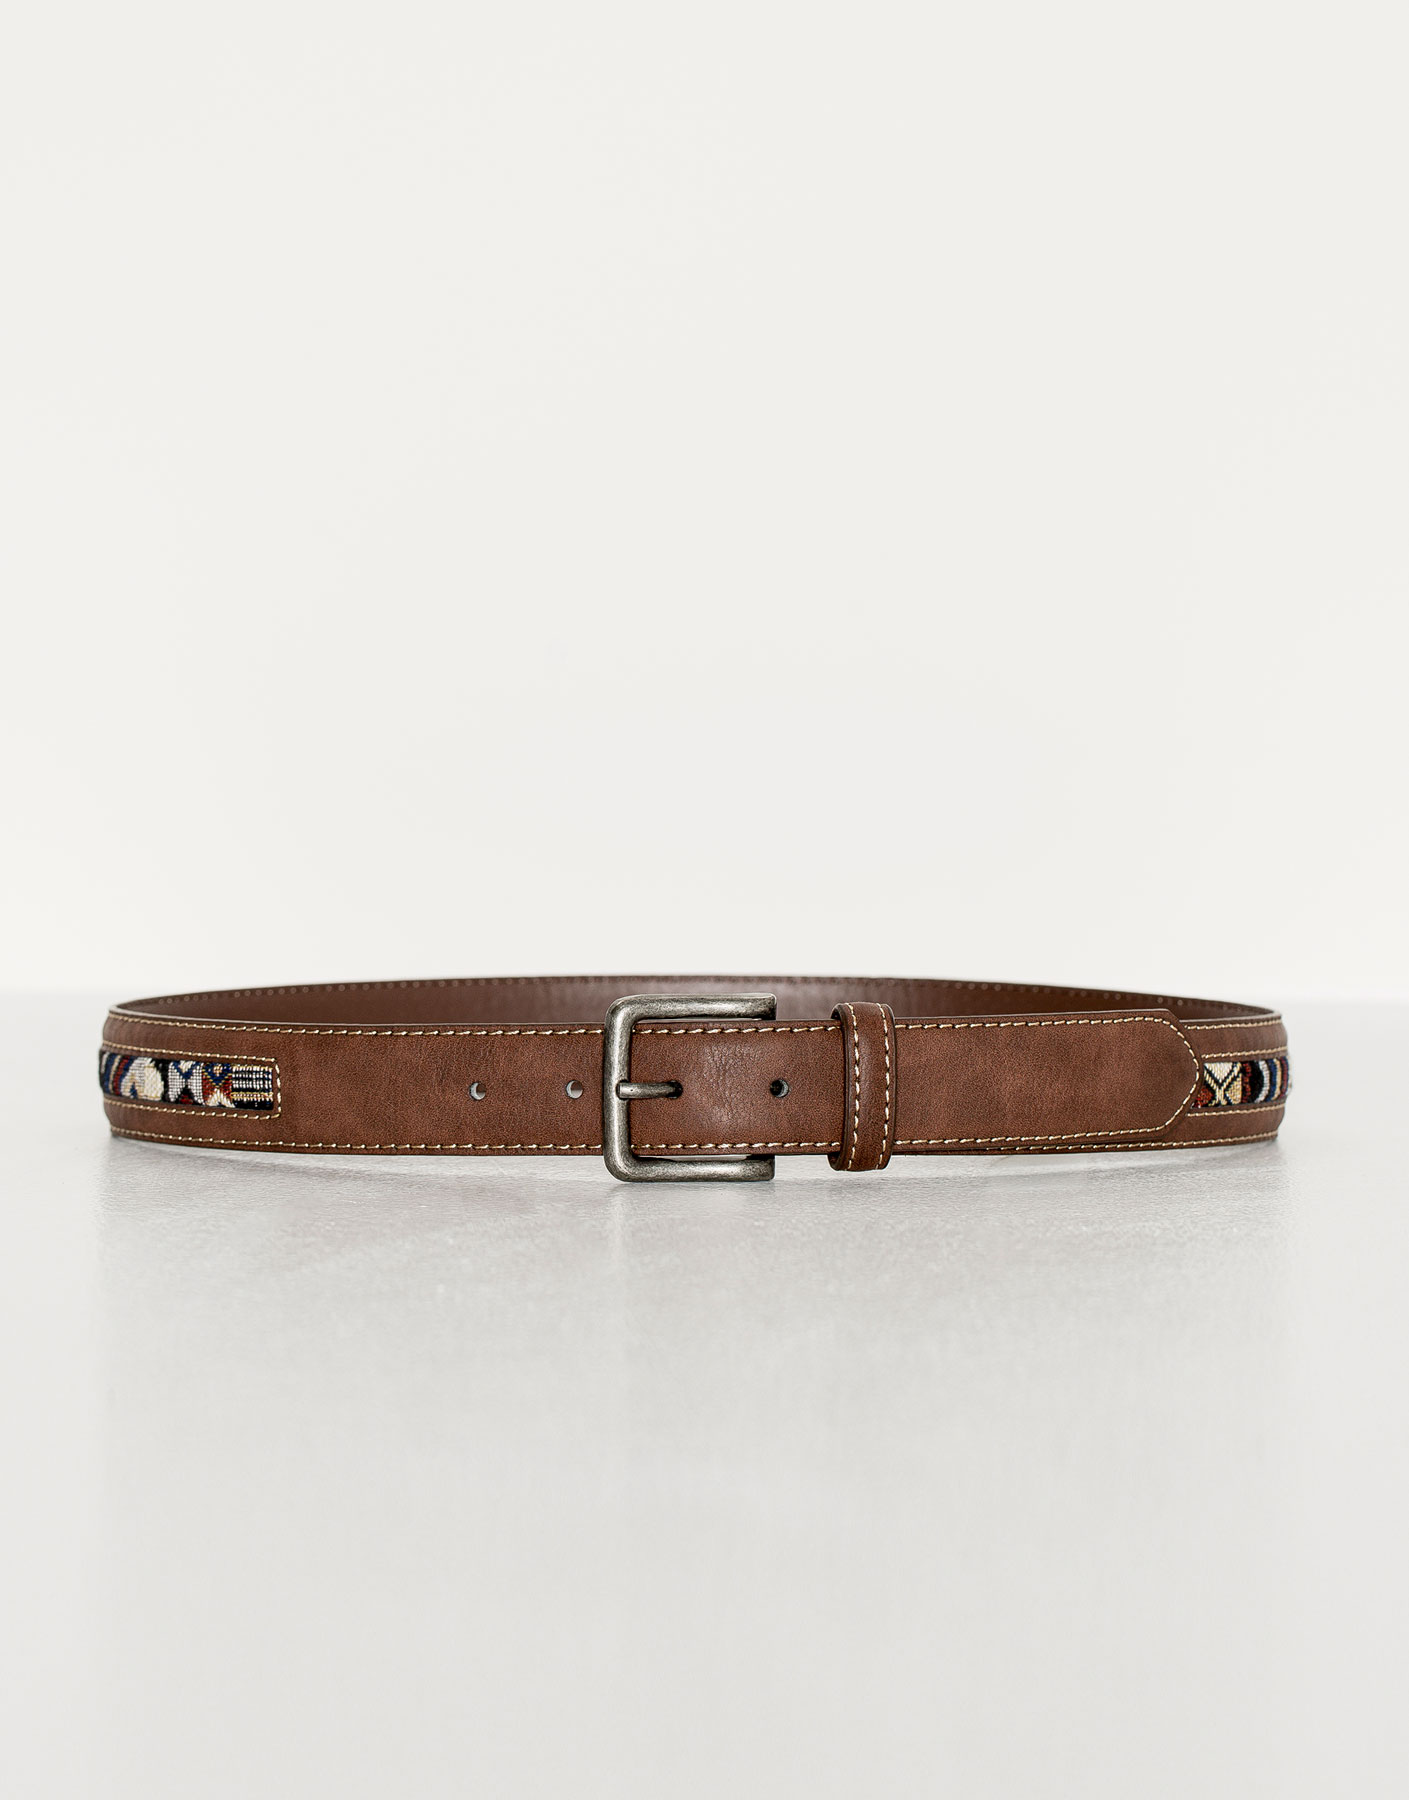 Tribal belt